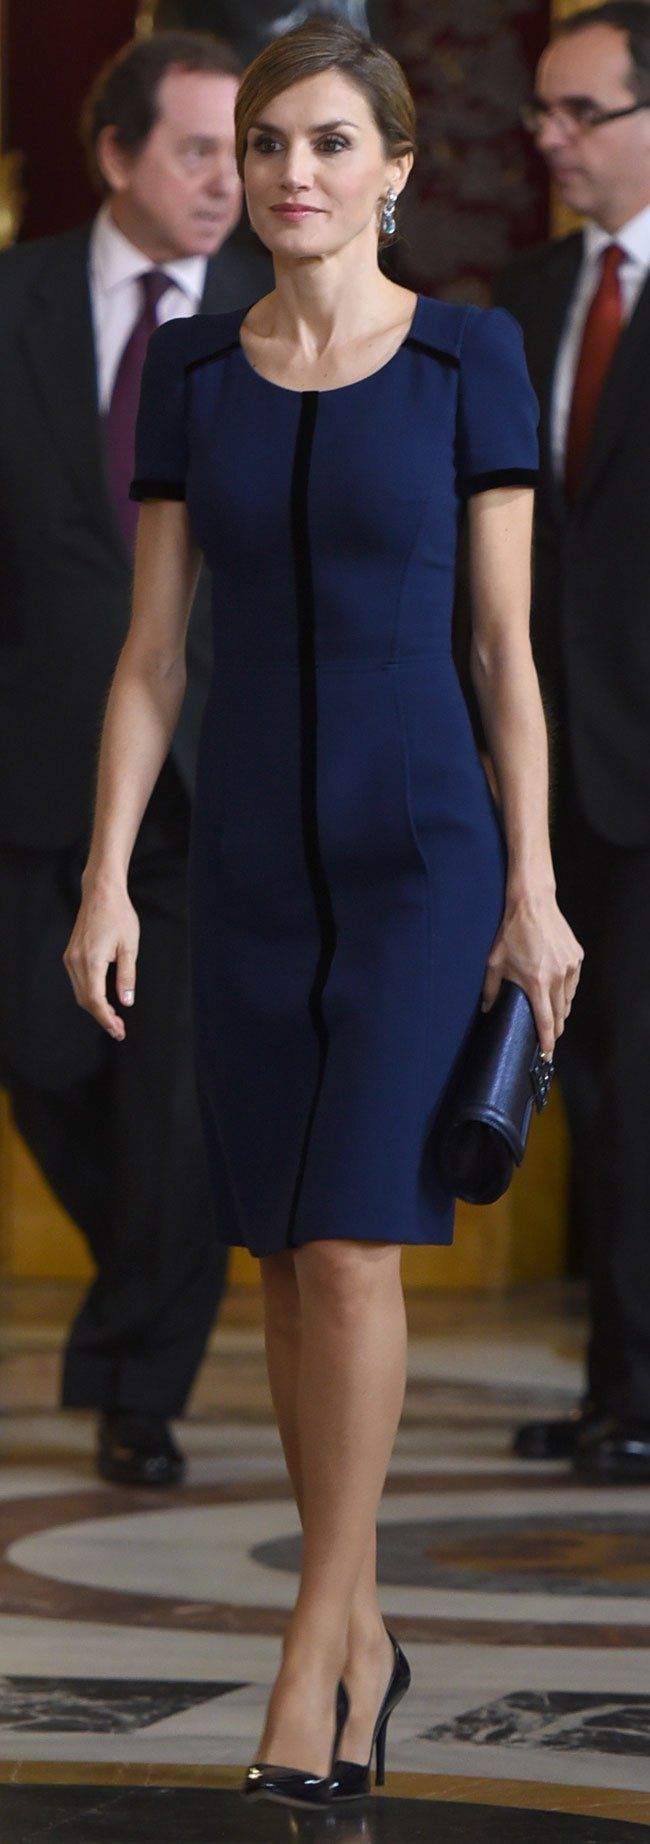 Queen Letizia of Spain wearing a Felipe Varela dress & clutch with Magrit shoes